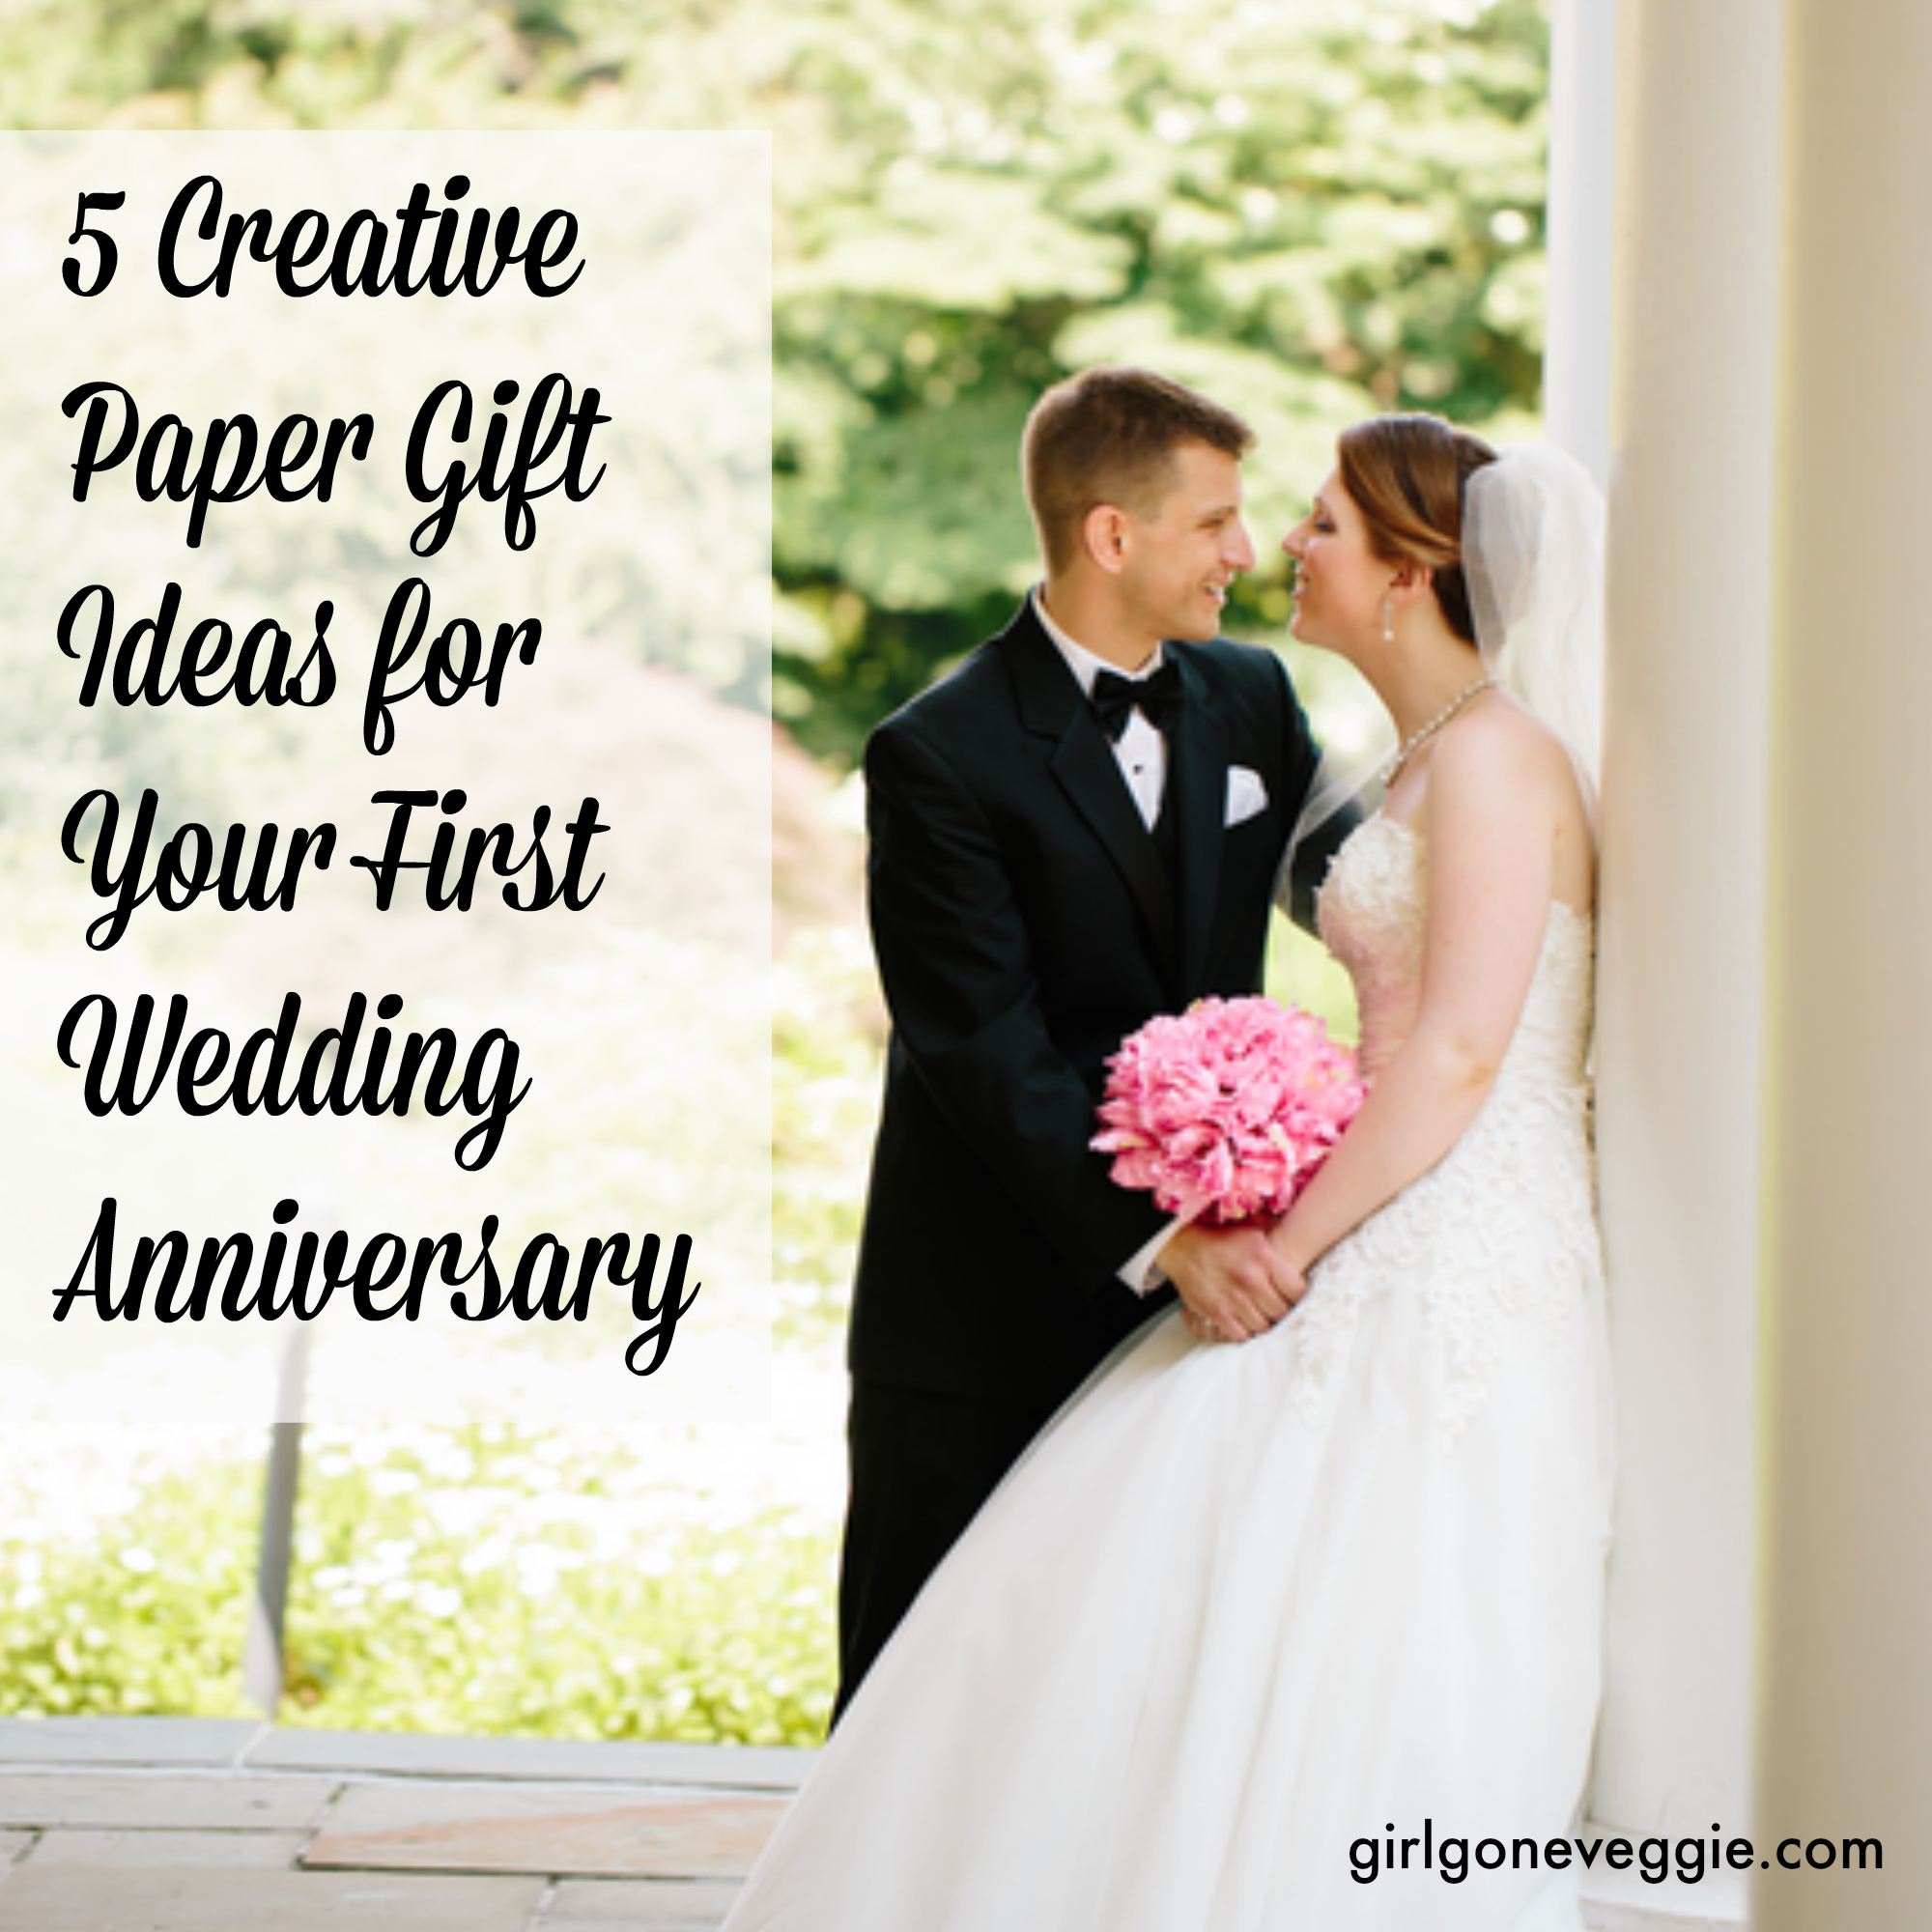 First Wedding Anniversary Gift Ideas For Him Uk : ... PhotosAnniversary Gift Ideas By Year Wedding Anniversary Gift Ideas